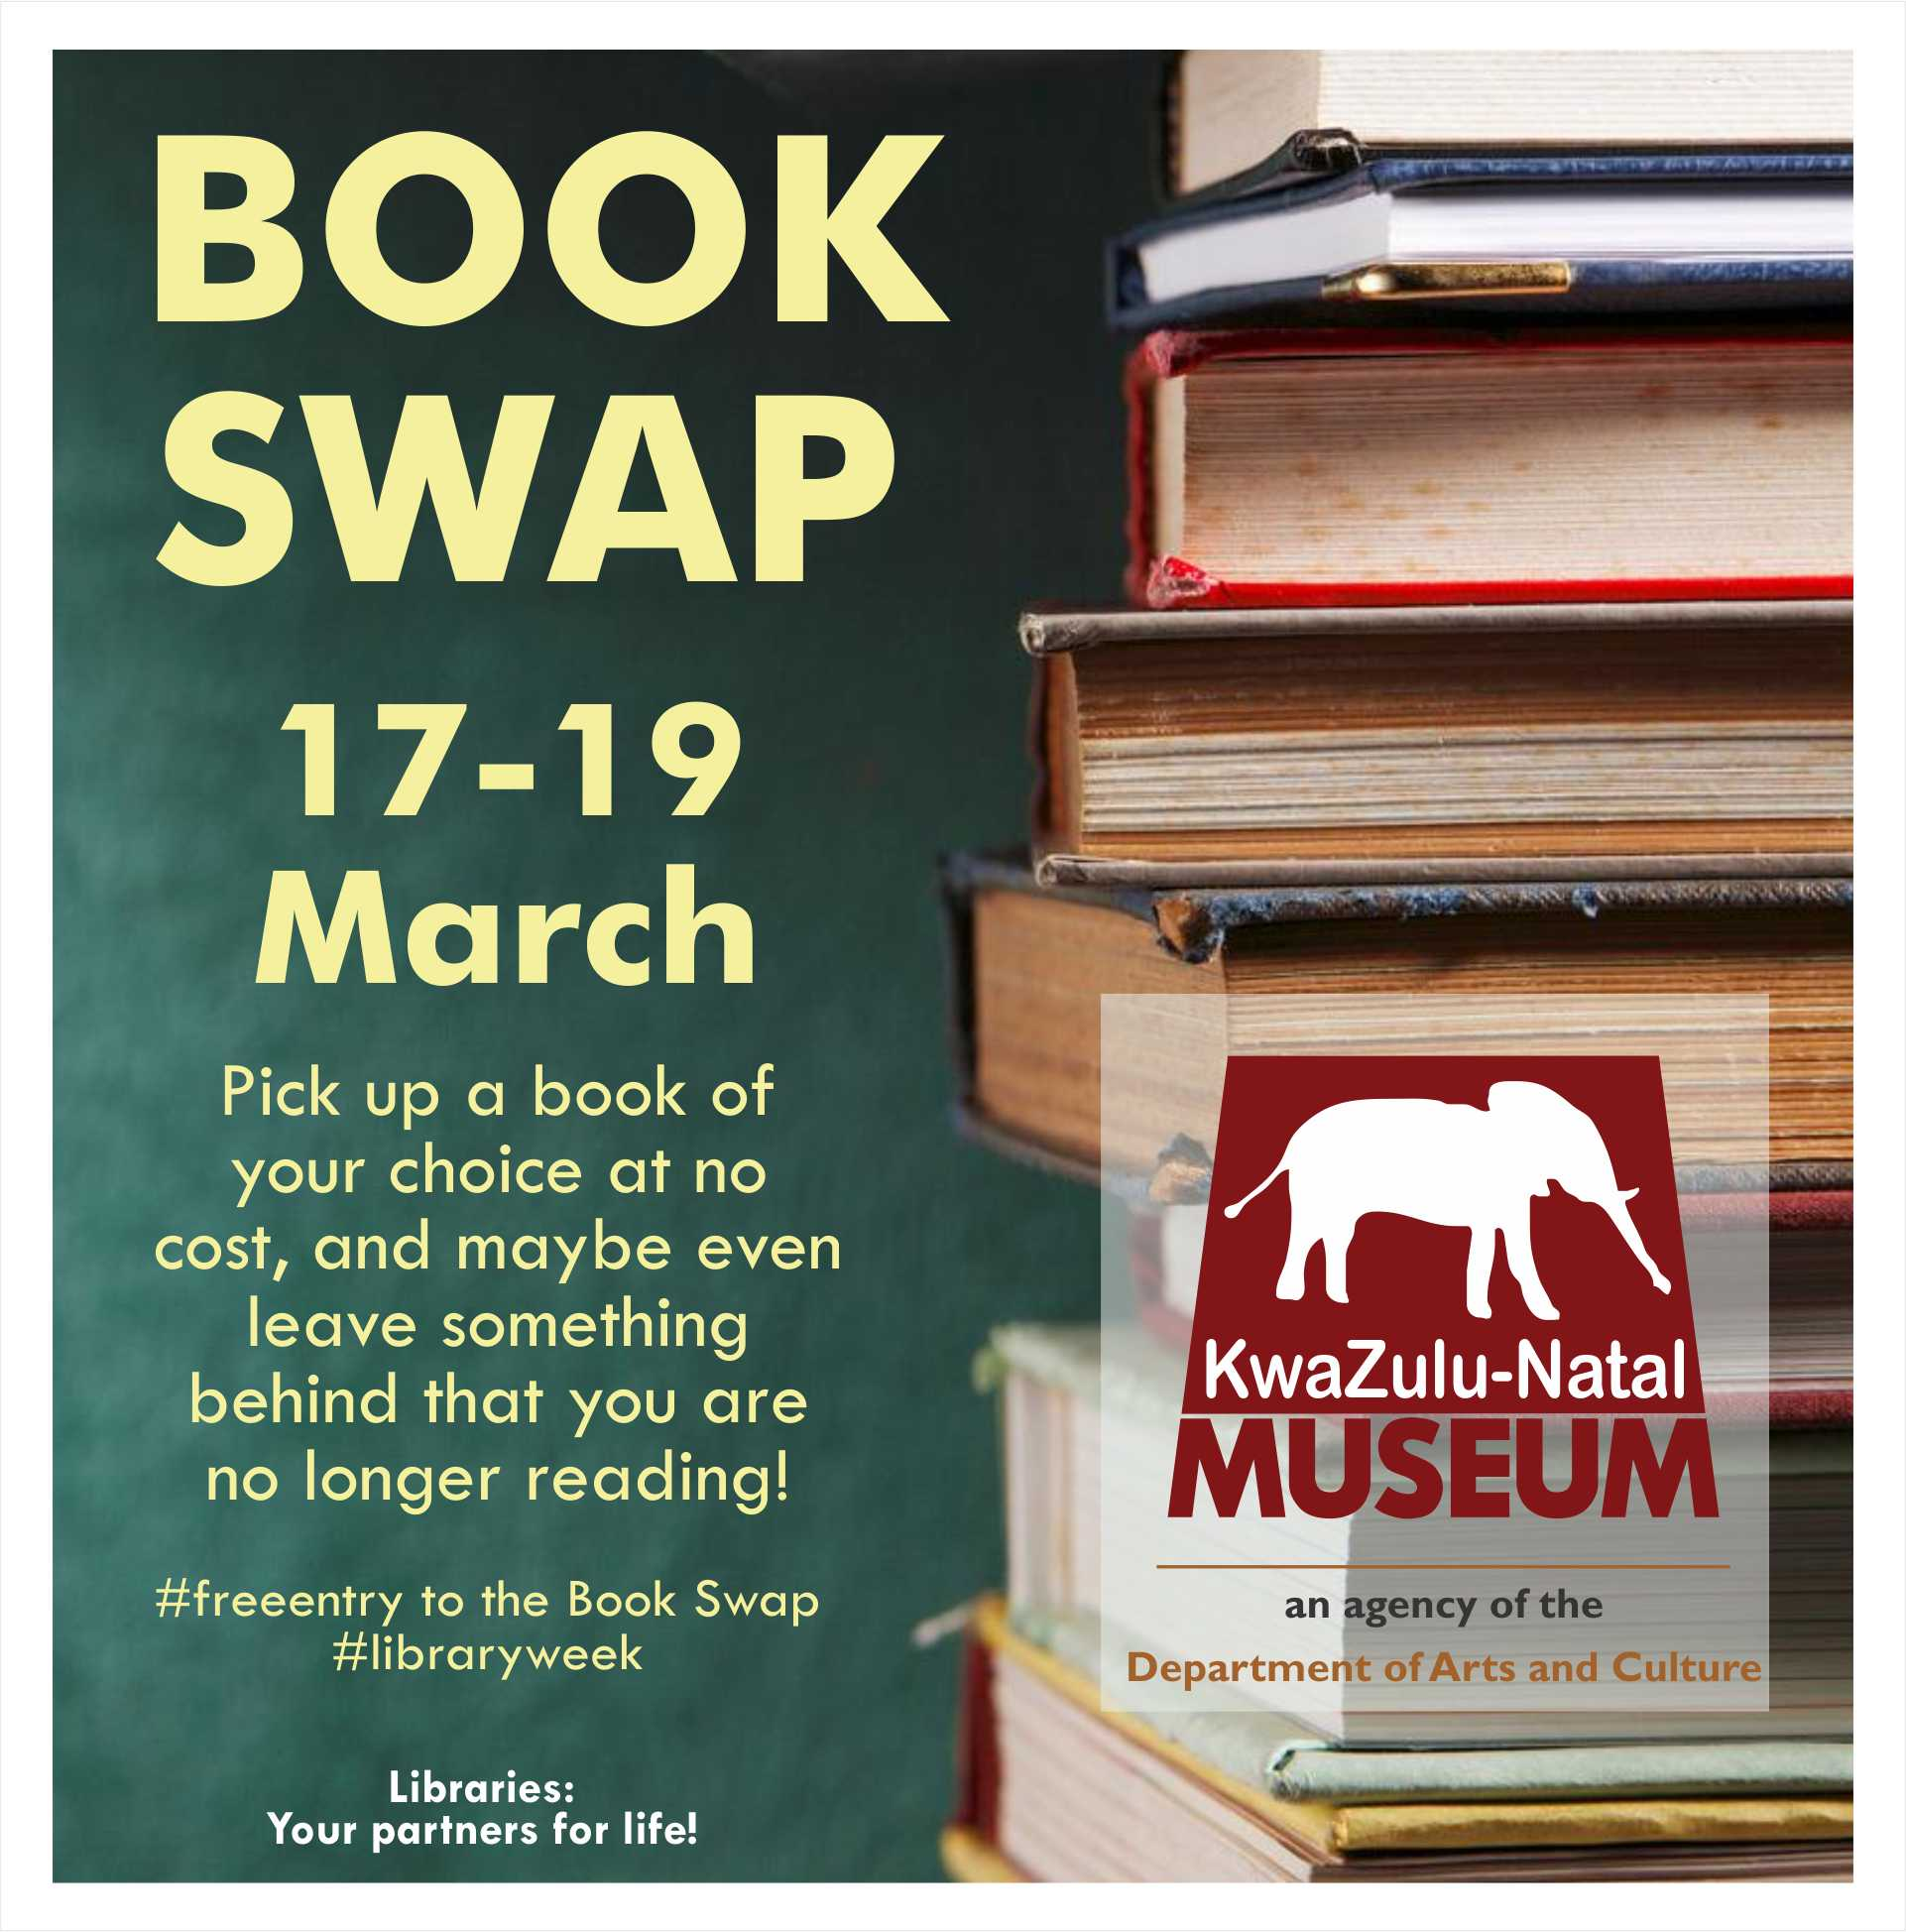 Book swap advert